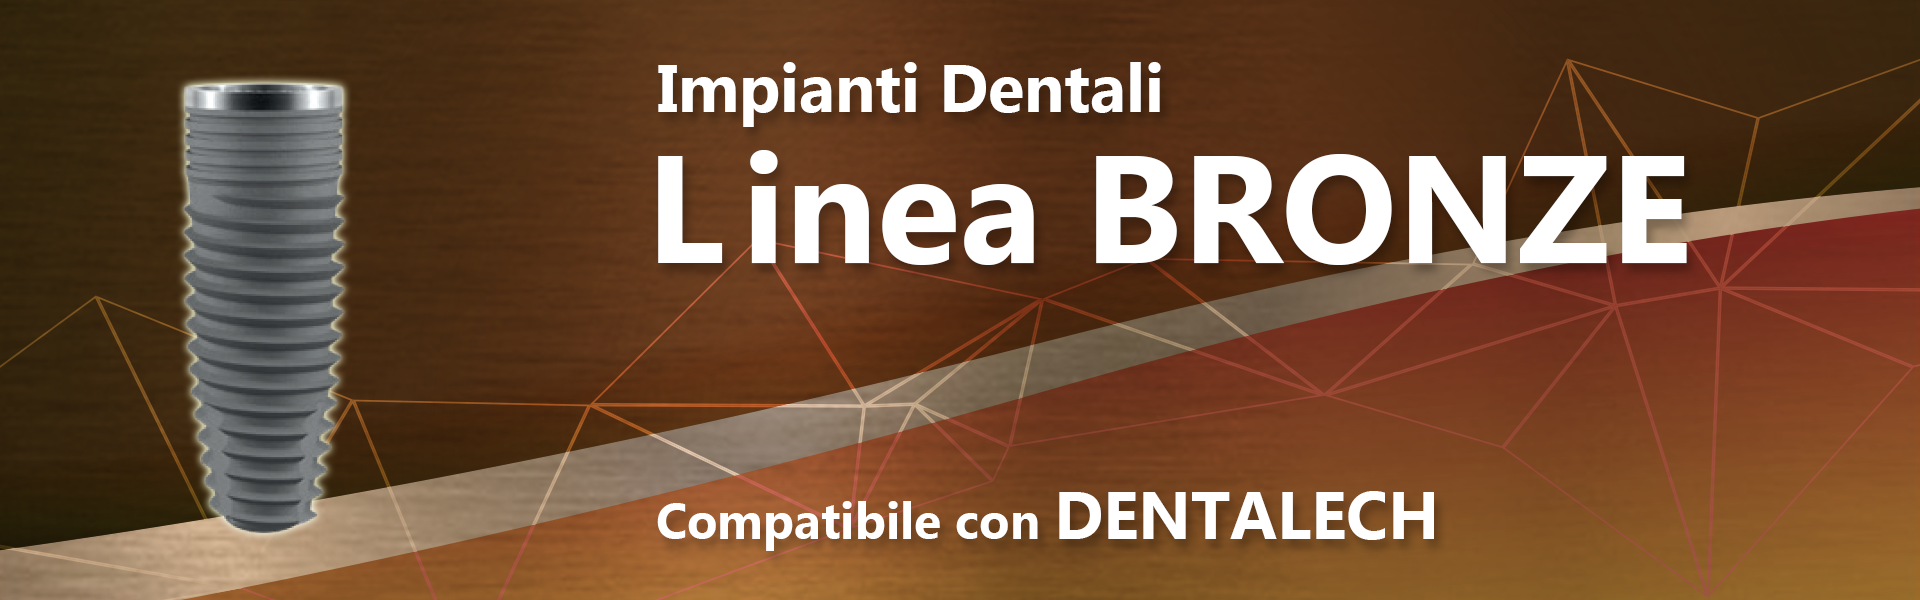 Linea BRONZE (compatibile con DENTALTECH)